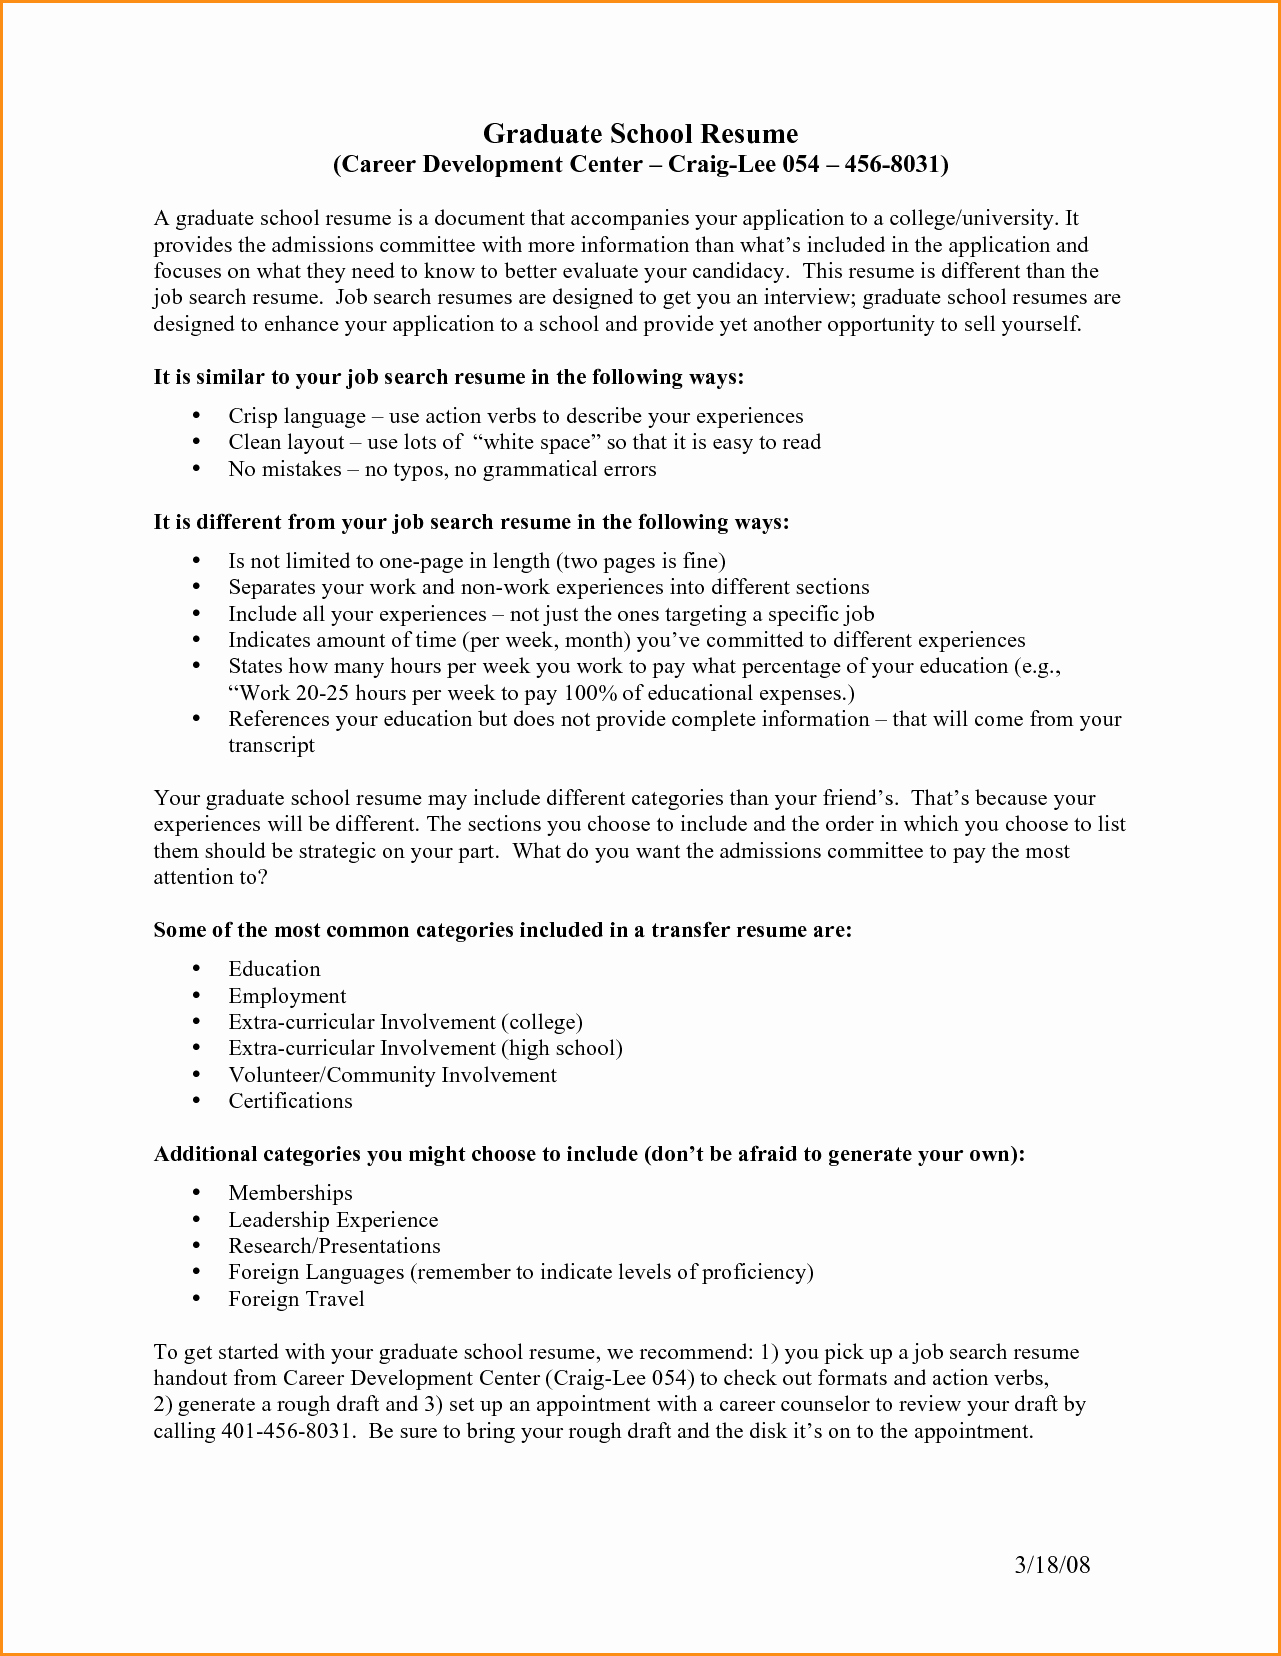 Grad School Resume Template Unique 14 Graduate School Resume Objective